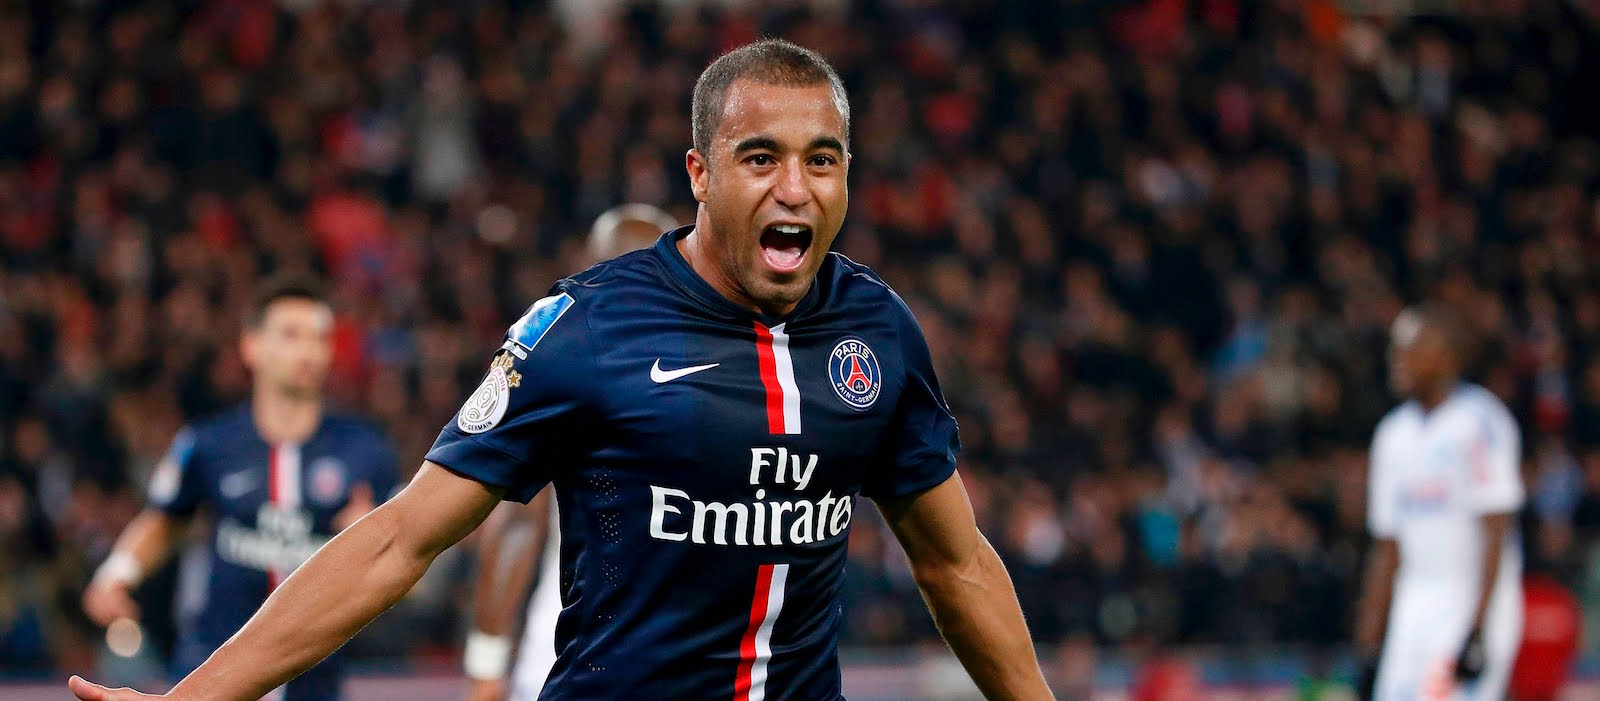 Manchester United reach agreement with Paris Saint Germain to sign Lucas Moura – report